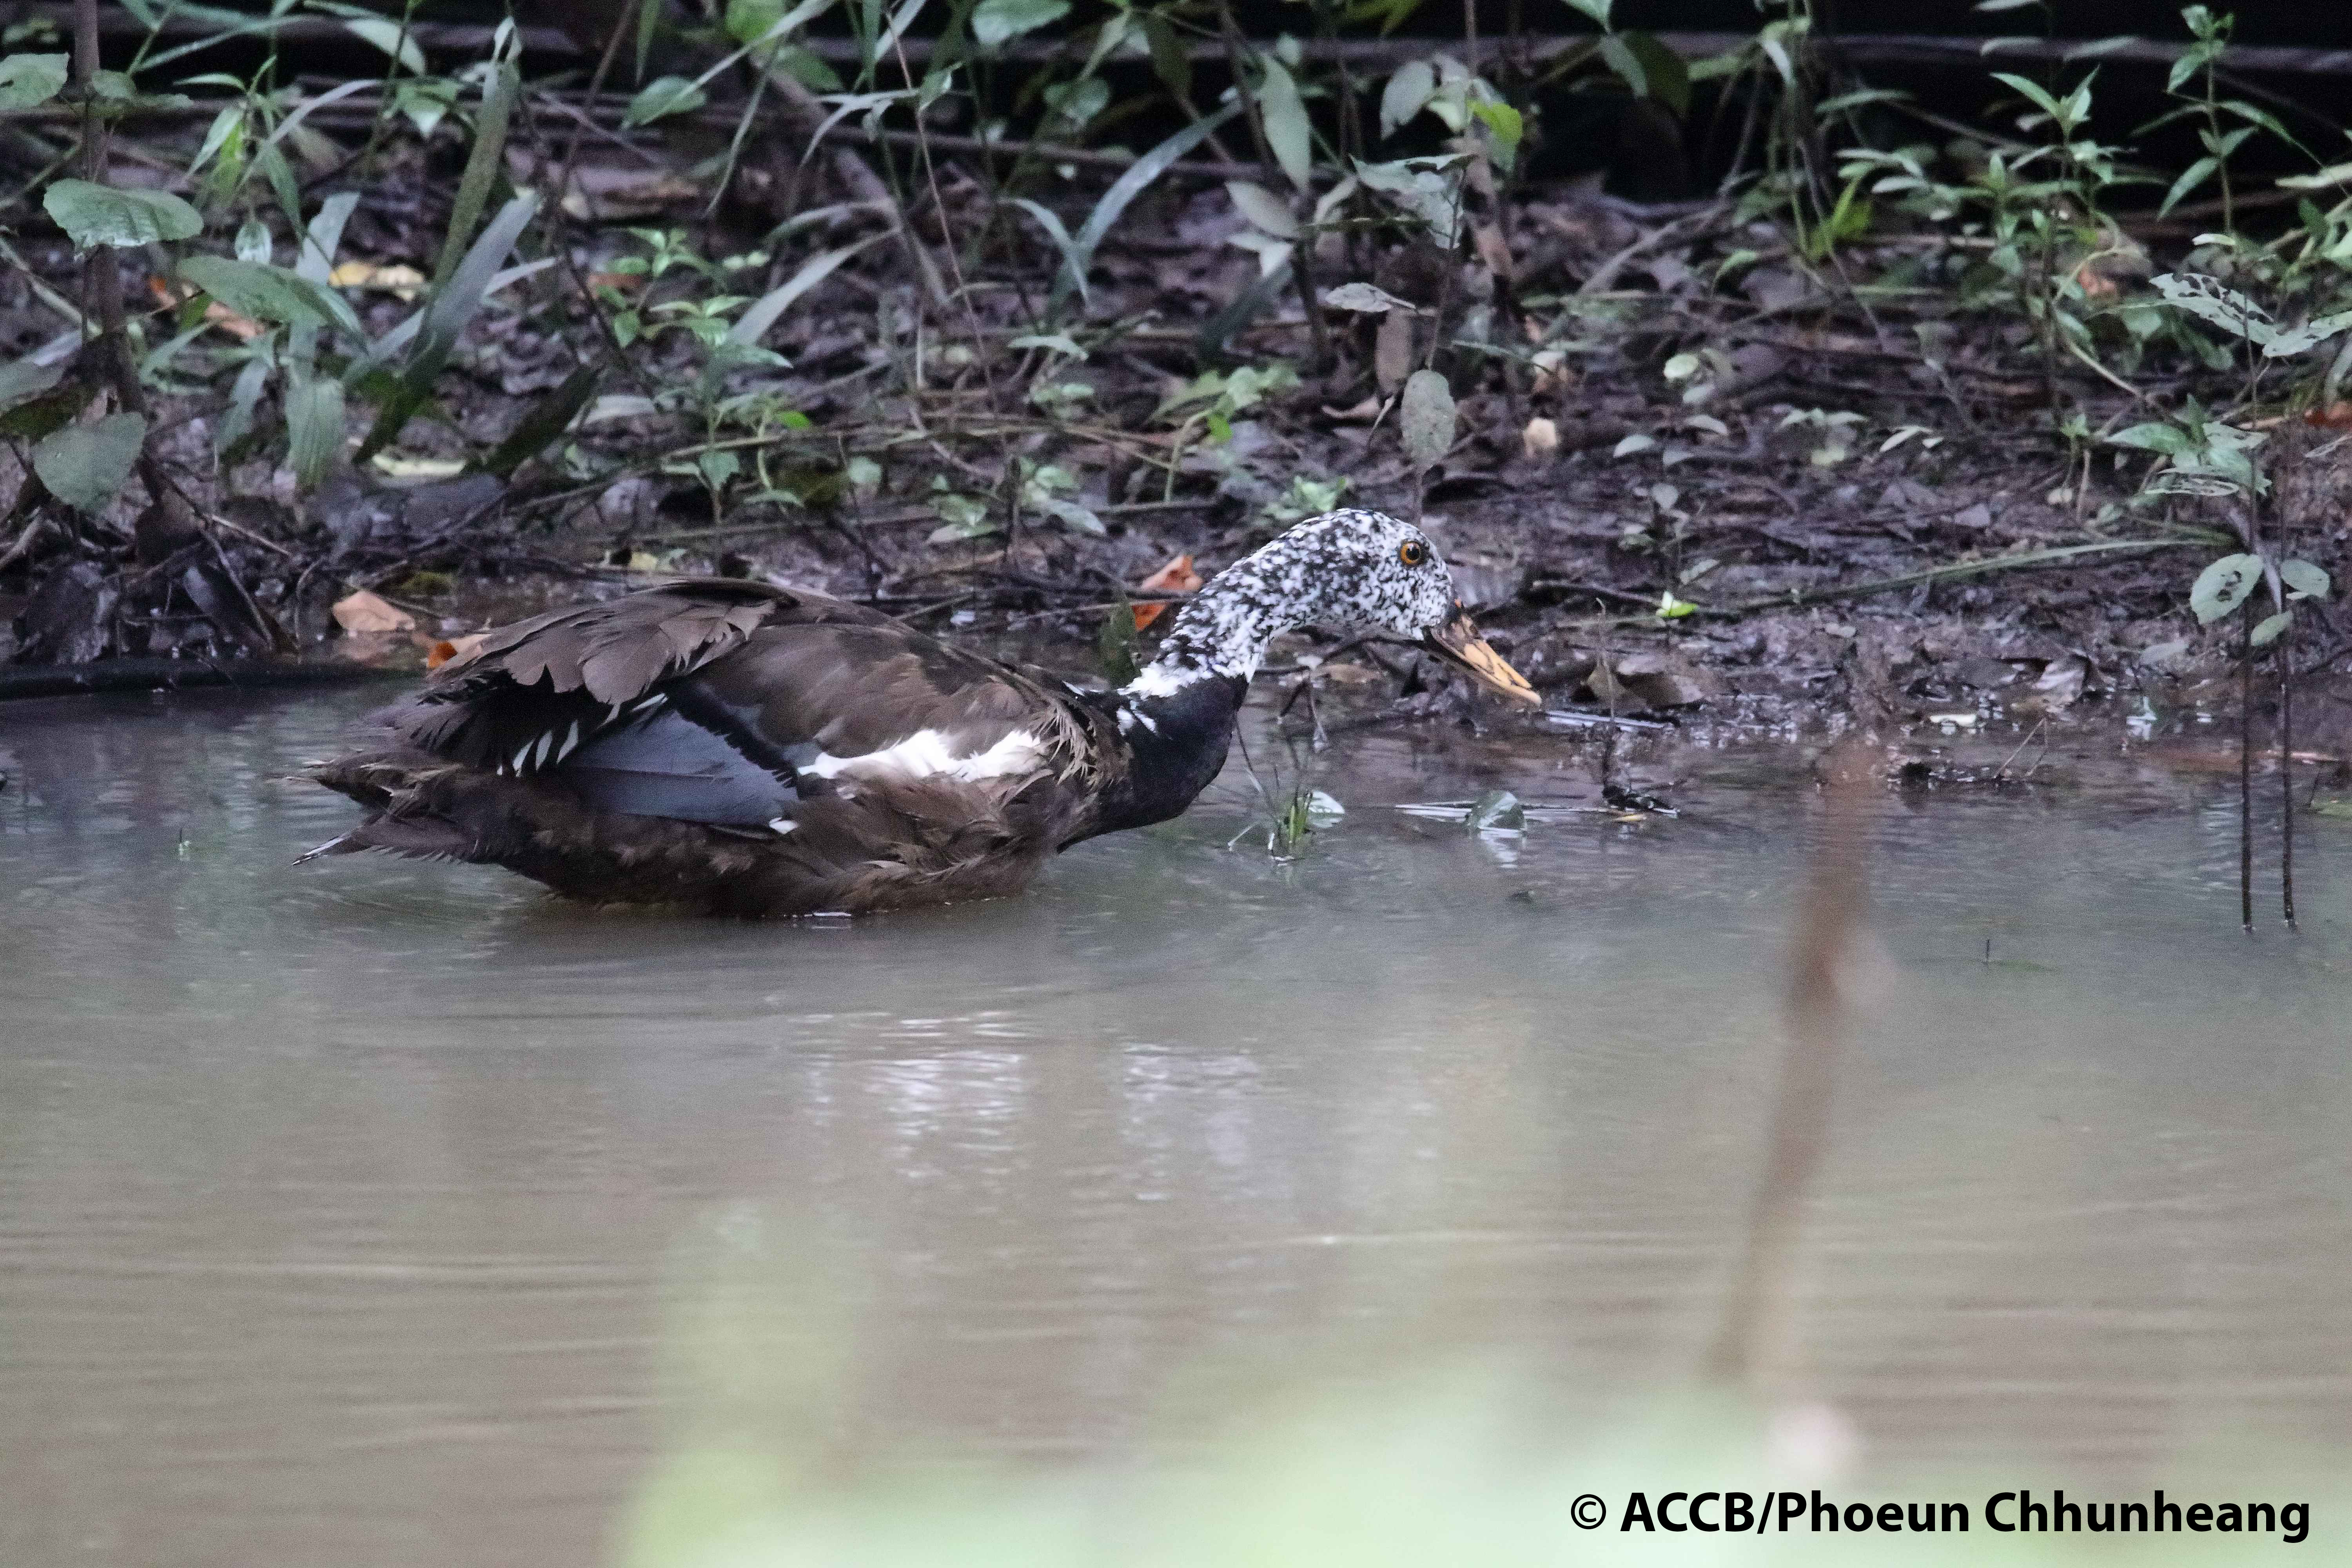 White-winged duck released back to the wild in Kulen Promtep Wildlife Sanctuary, Northern Plains Landscape (Preah Vihear province)